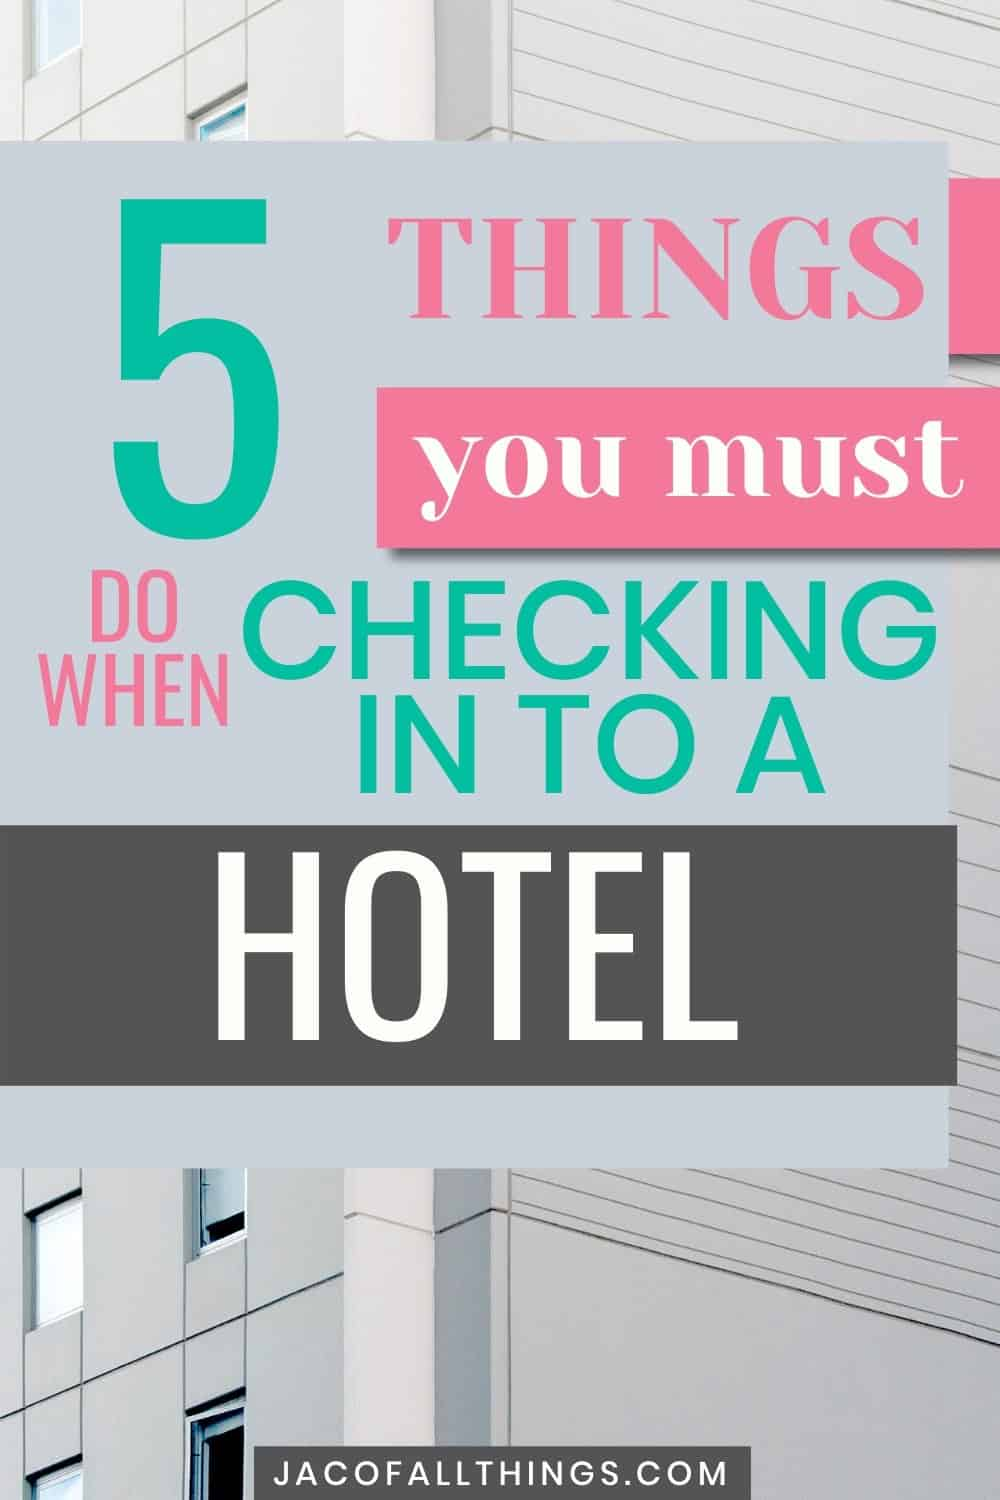 5 Things to Do When Checking into a Hotel